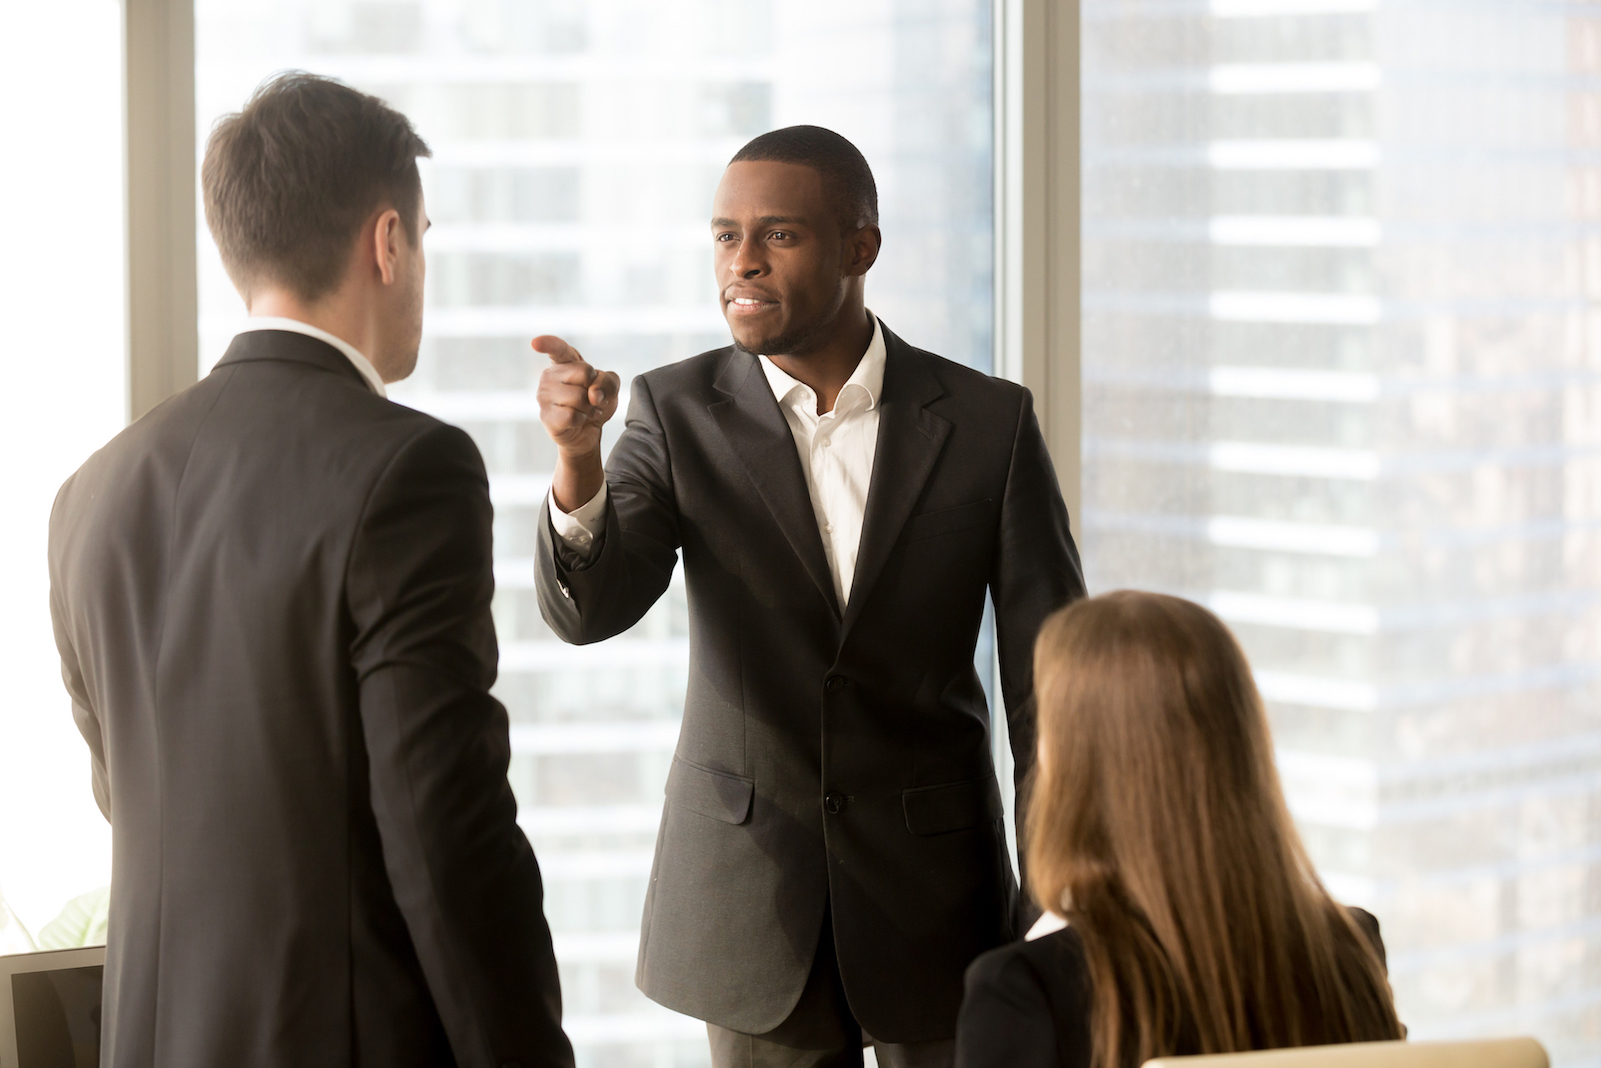 Walking the line – Performance management and workplace bullying